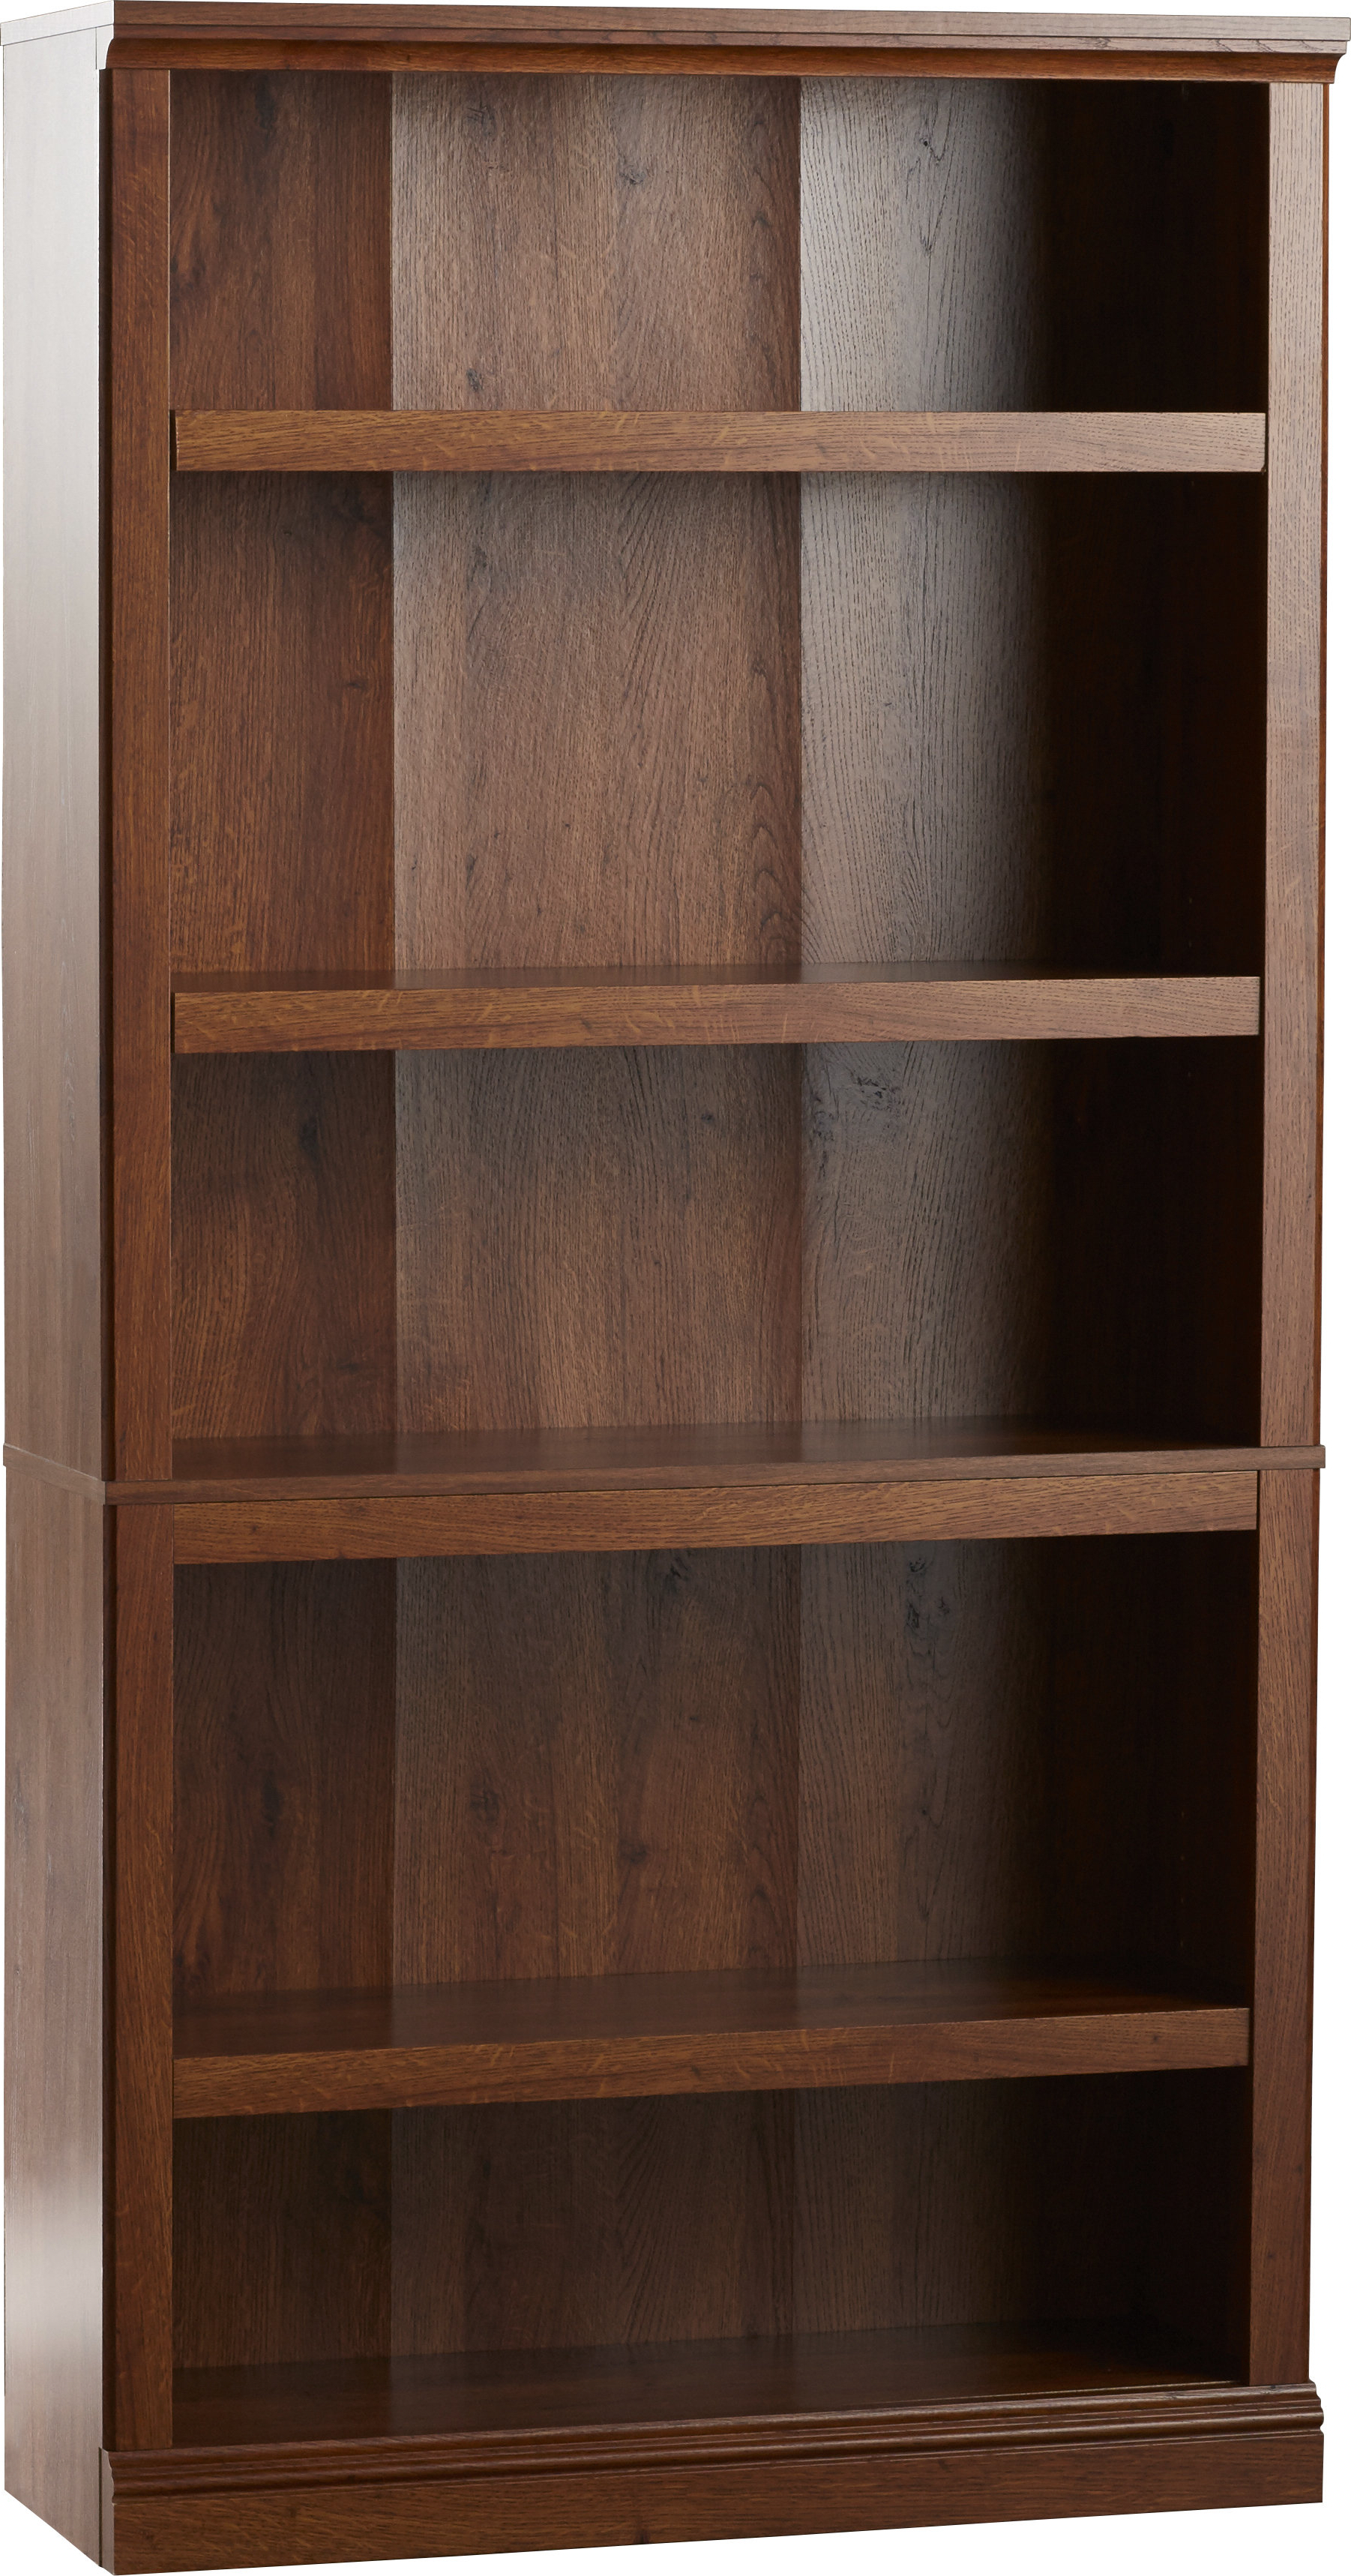 Recent Abigail Standard Bookcase In Abigail Standard Bookcases (View 7 of 20)